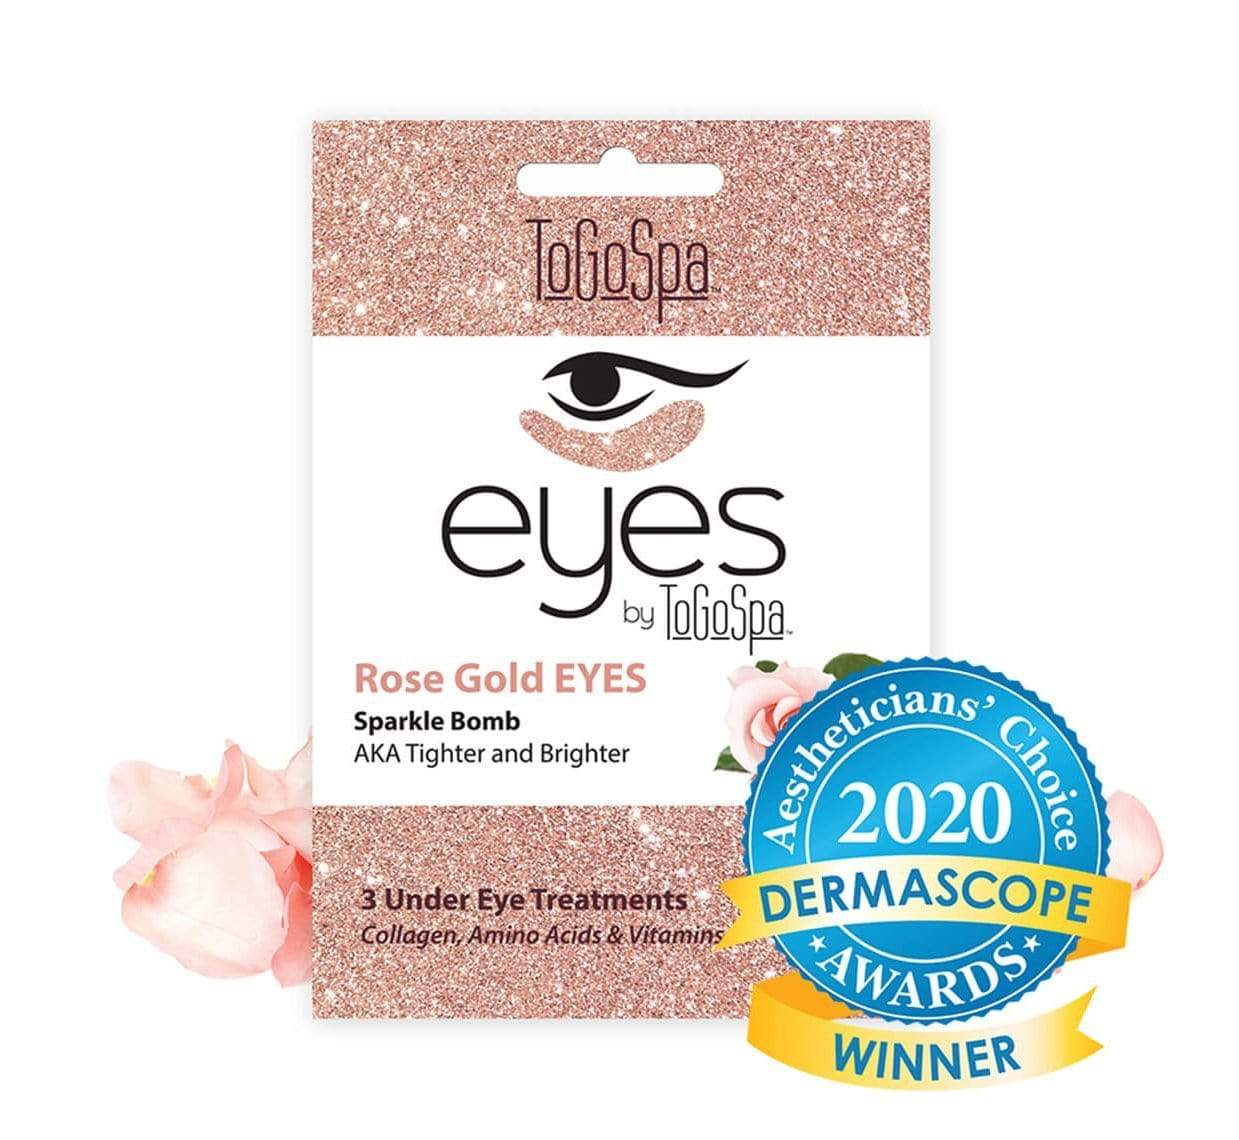 ToGoSpa eyes Rose Gold EYES :: AKA Tighter & Brighter